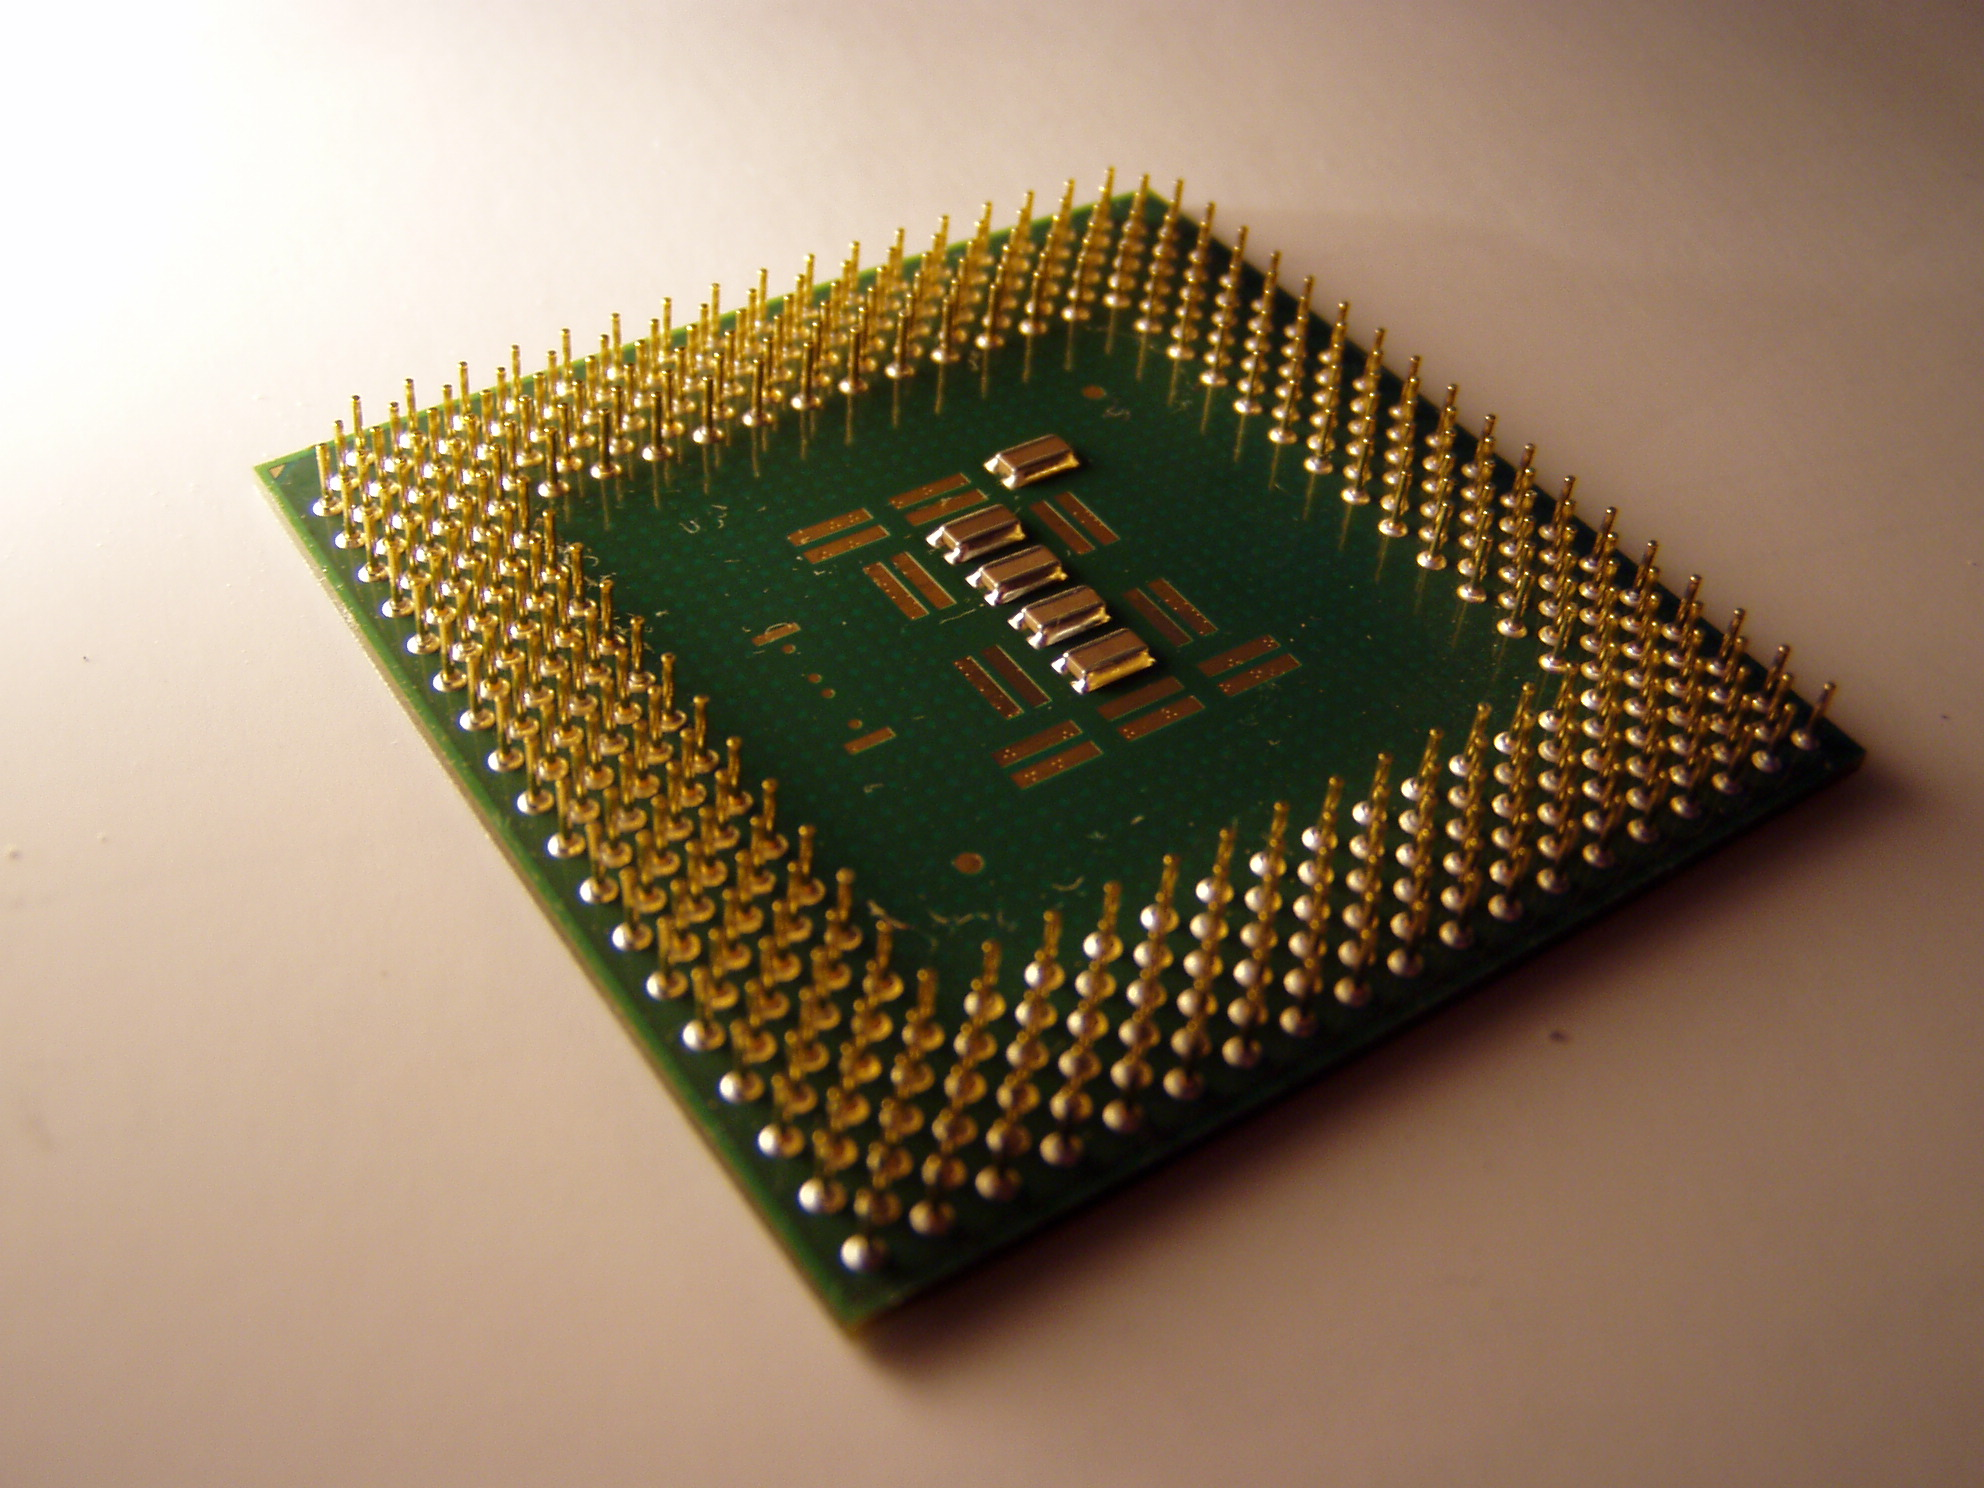 Images of CPU | 1984x1488